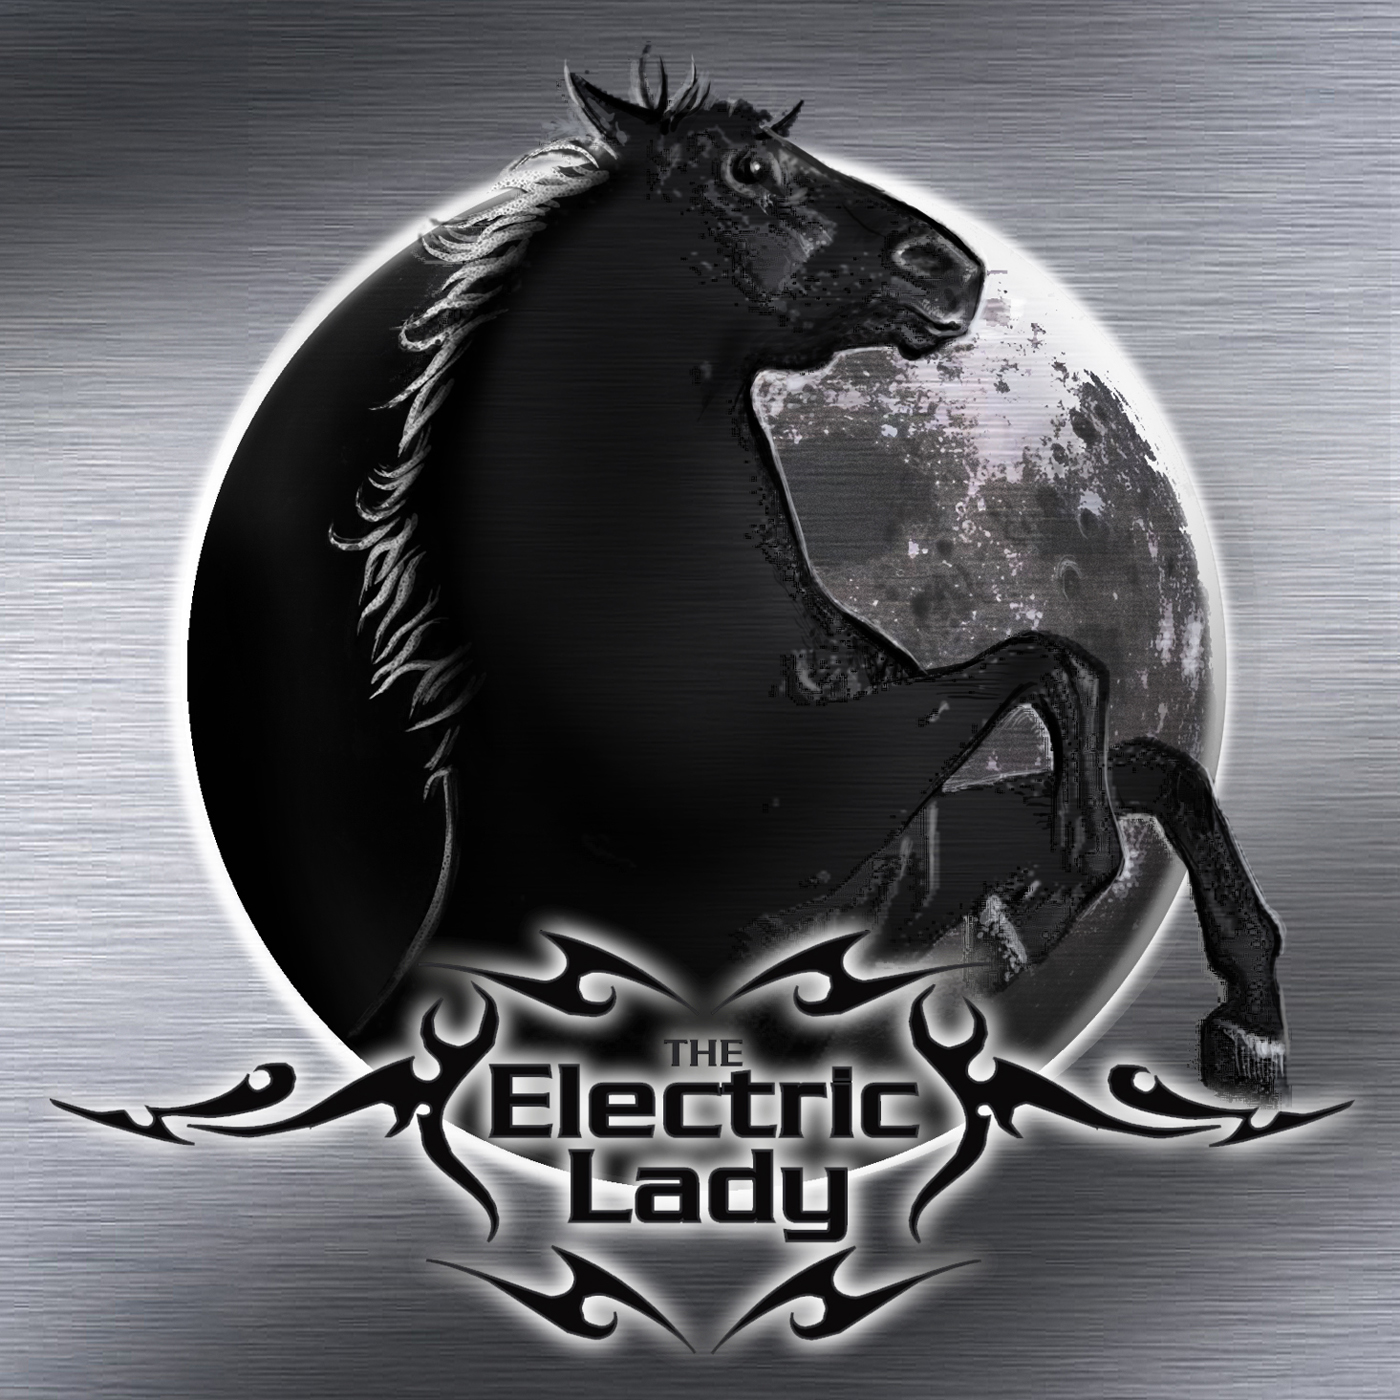 The Electric Lady: Black Moon